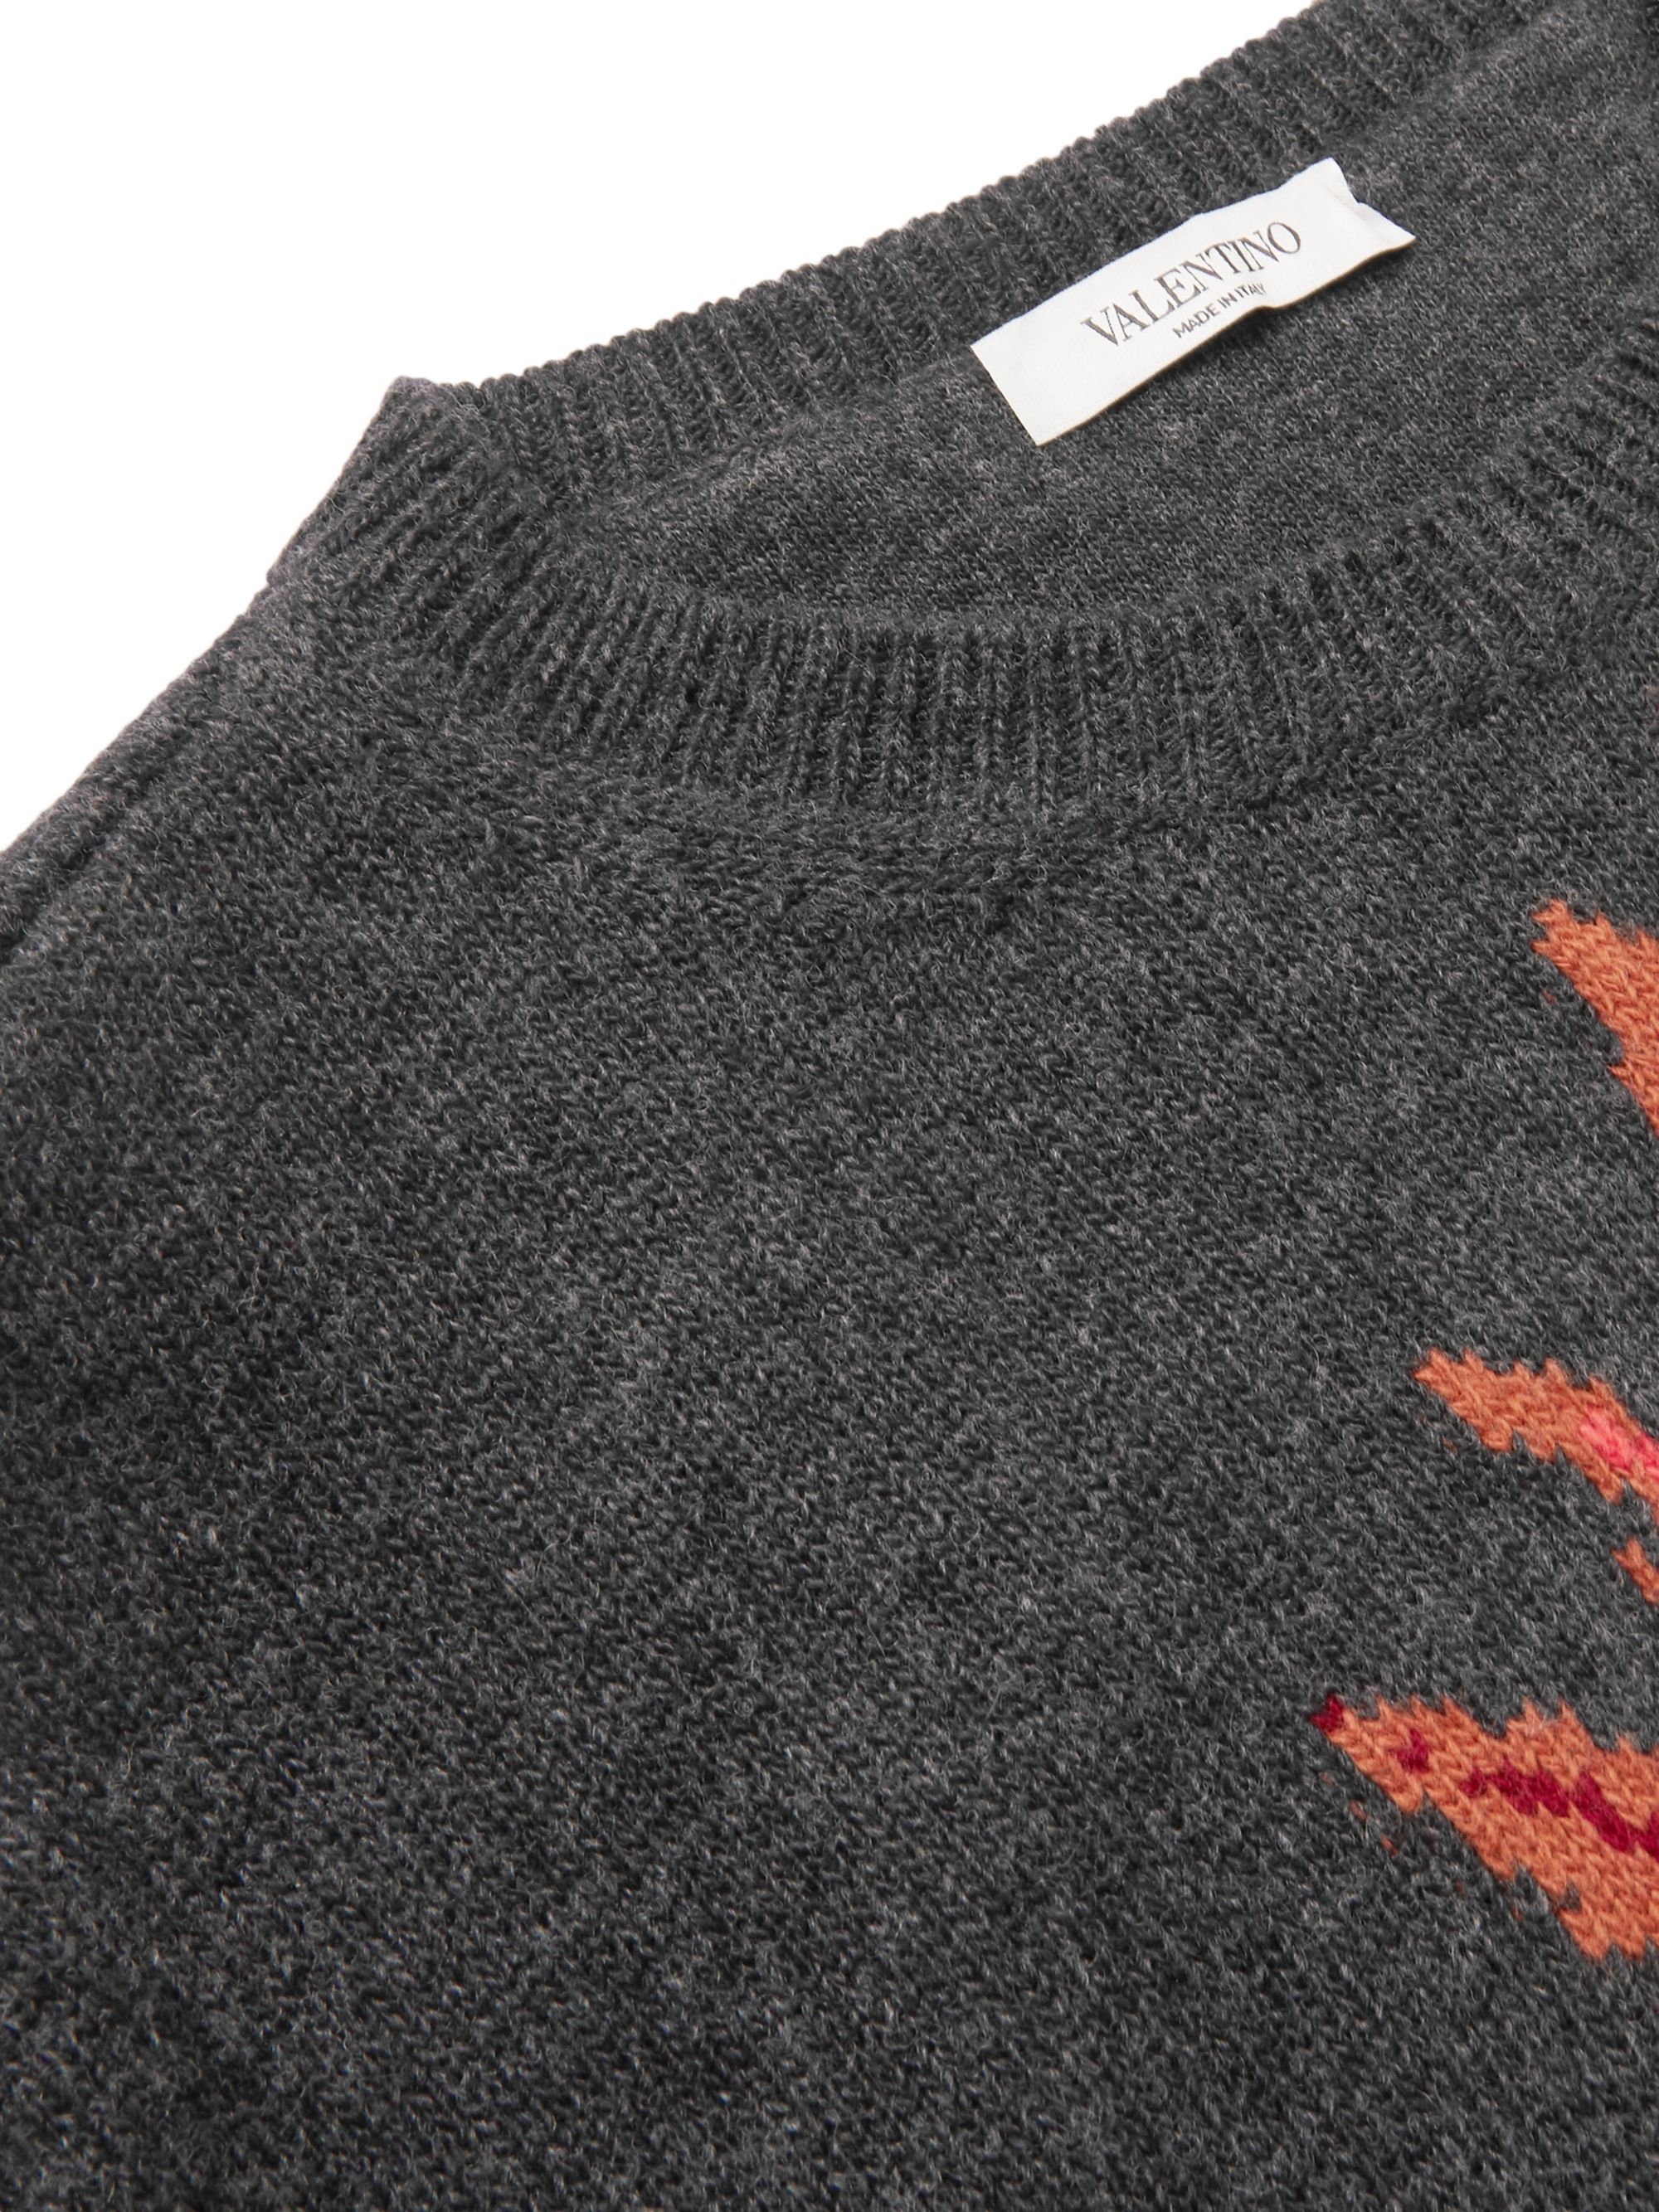 VALENTINO UOMO Parrot-Intarsia Virgin Wool and Cashmere-Blend Sweater